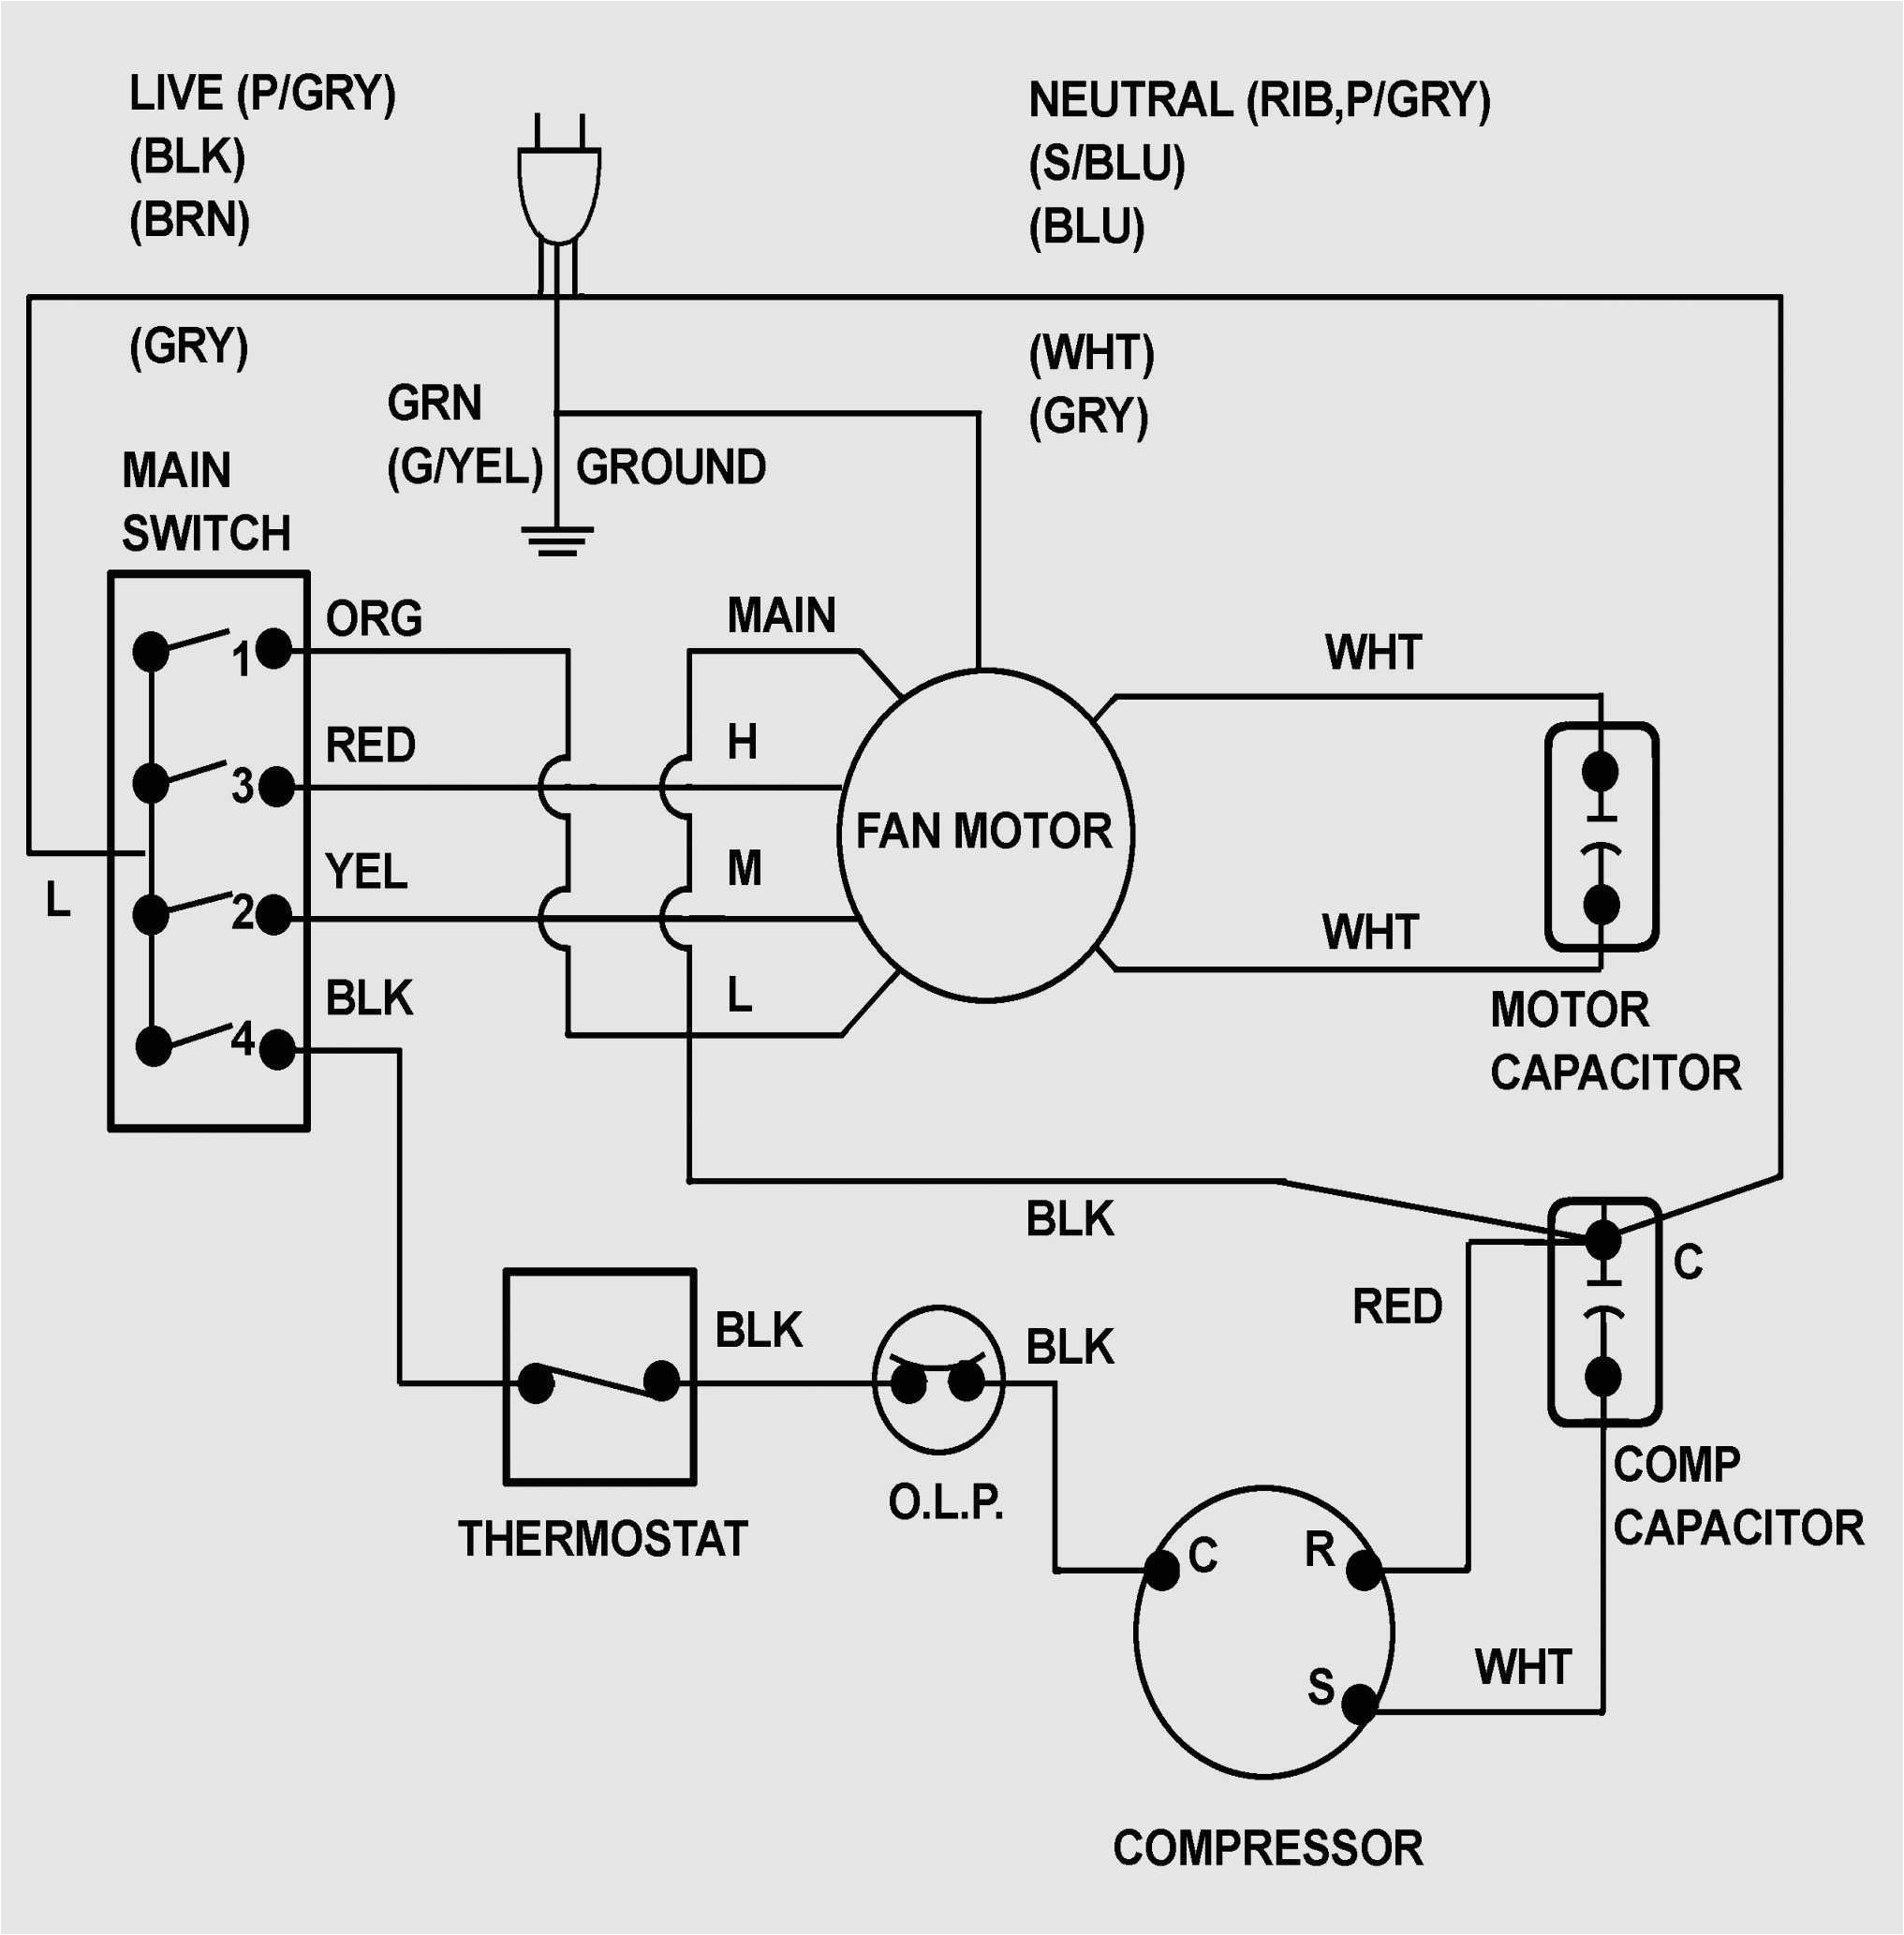 wiring diagram easy set up air conditioning use wiring diagram 2004 mpv air conditioner compressor wiring diagram